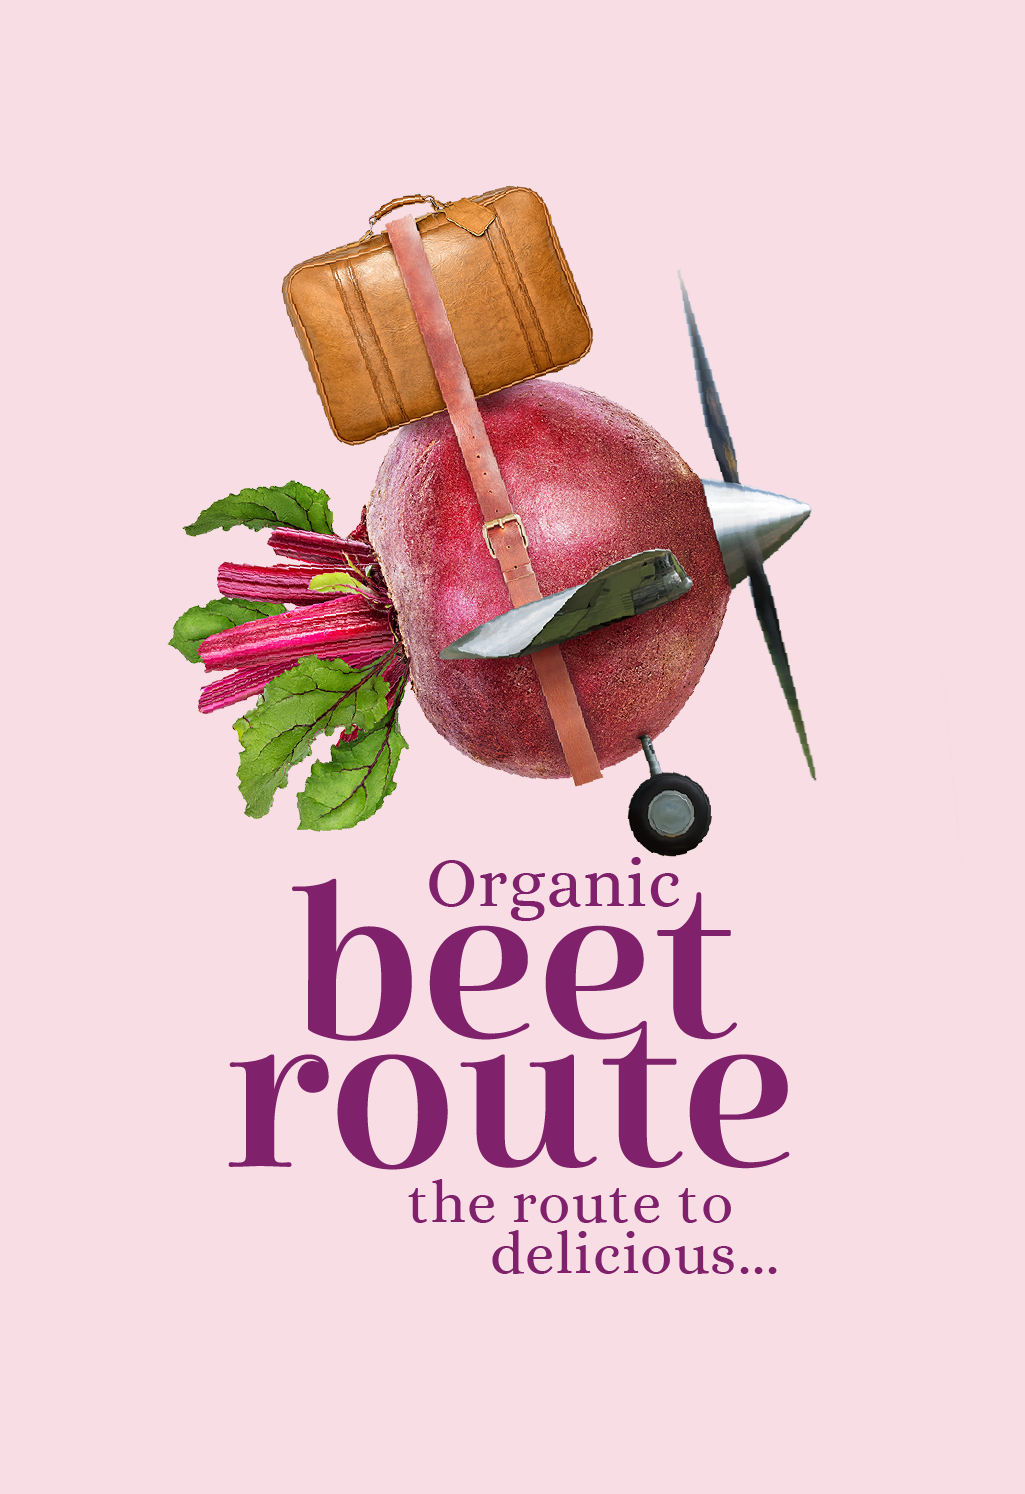 beetroute, the route to delicious... Dutch beetroot from